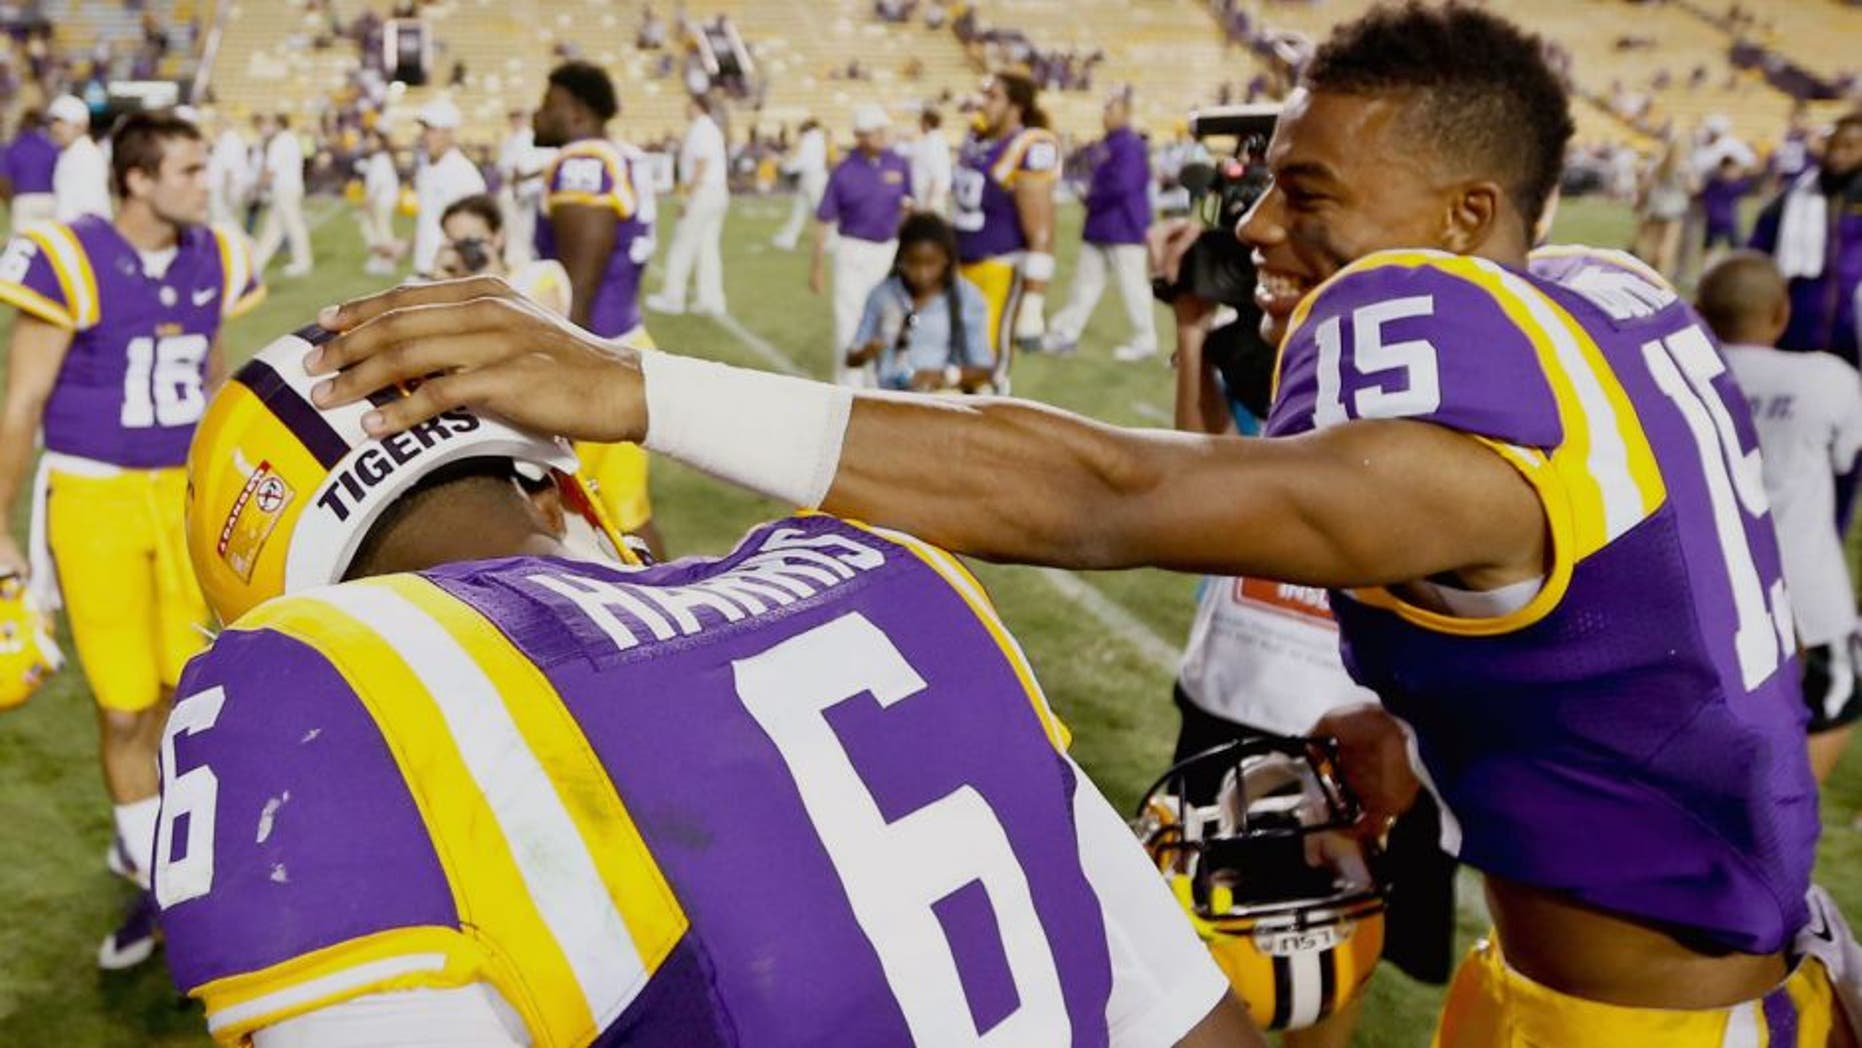 Sep 27, 2014; Baton Rouge, LA, USA; LSU Tigers wide receiver Malachi Dupre (15) and quarterback Brandon Harris (6) celebrate following a win against the New Mexico State Aggies in a game at Tiger Stadium. LSU defeated New Mexico State 63-7. Mandatory Credit: Derick E. Hingle-USA TODAY Sports